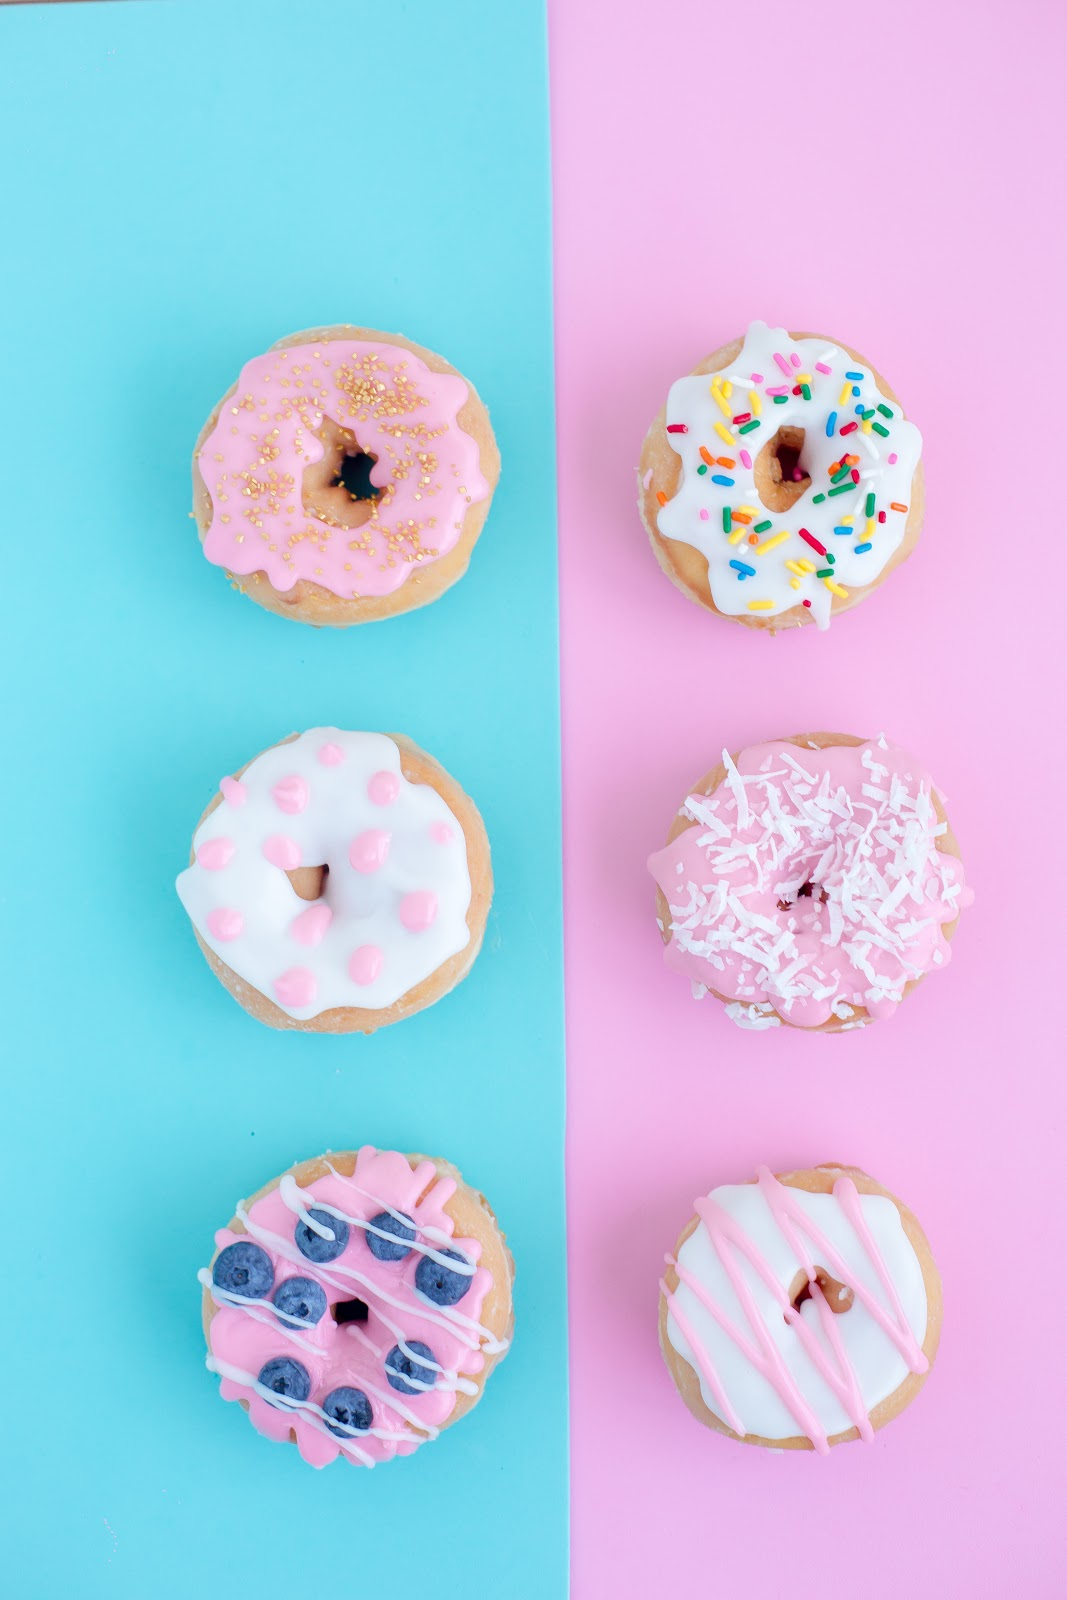 Donuts with different colored icing and sprinkles with a blue and pink background